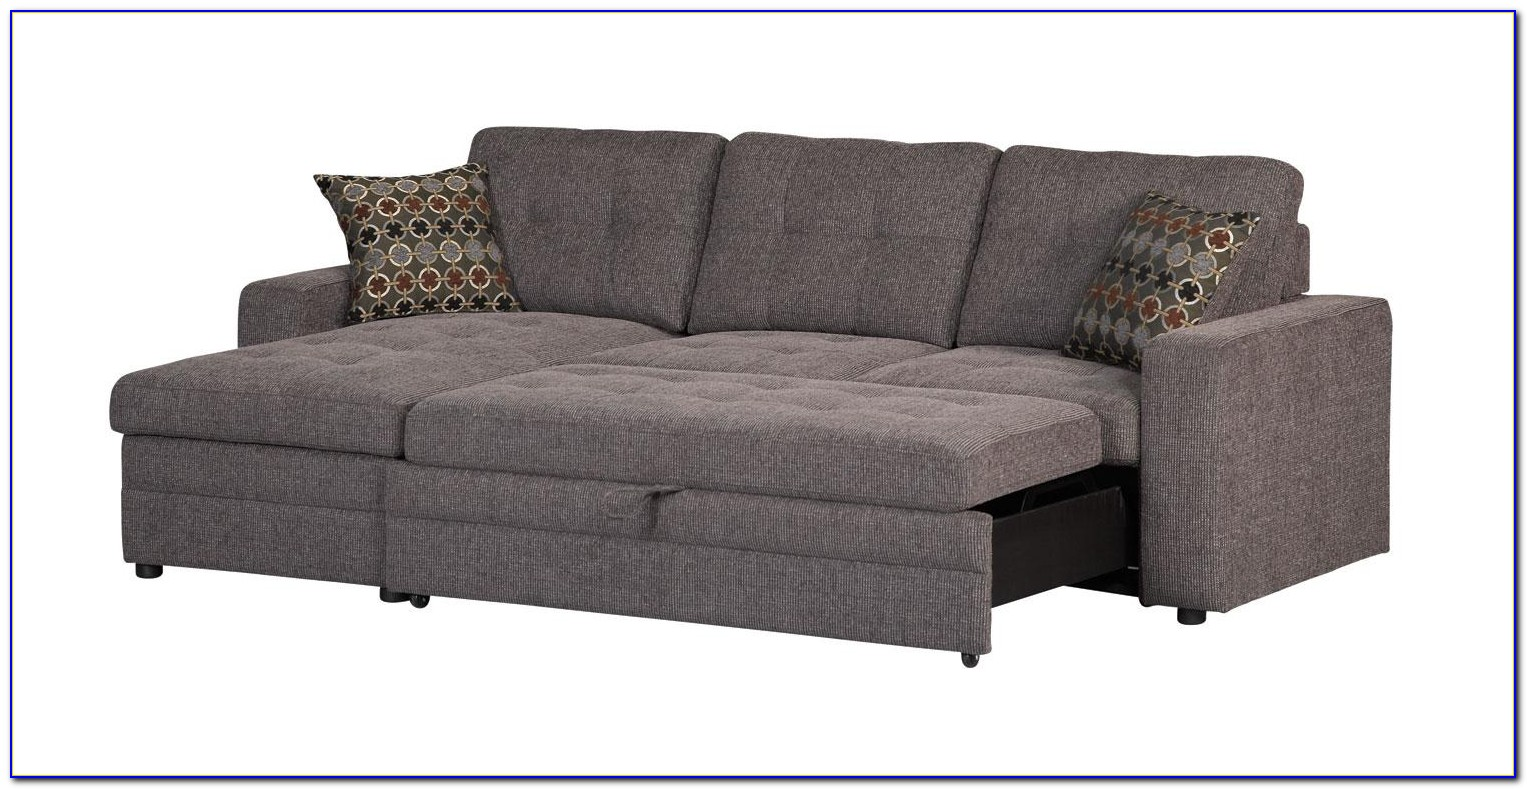 Sectional Sofa With Sleeper Small Spaces